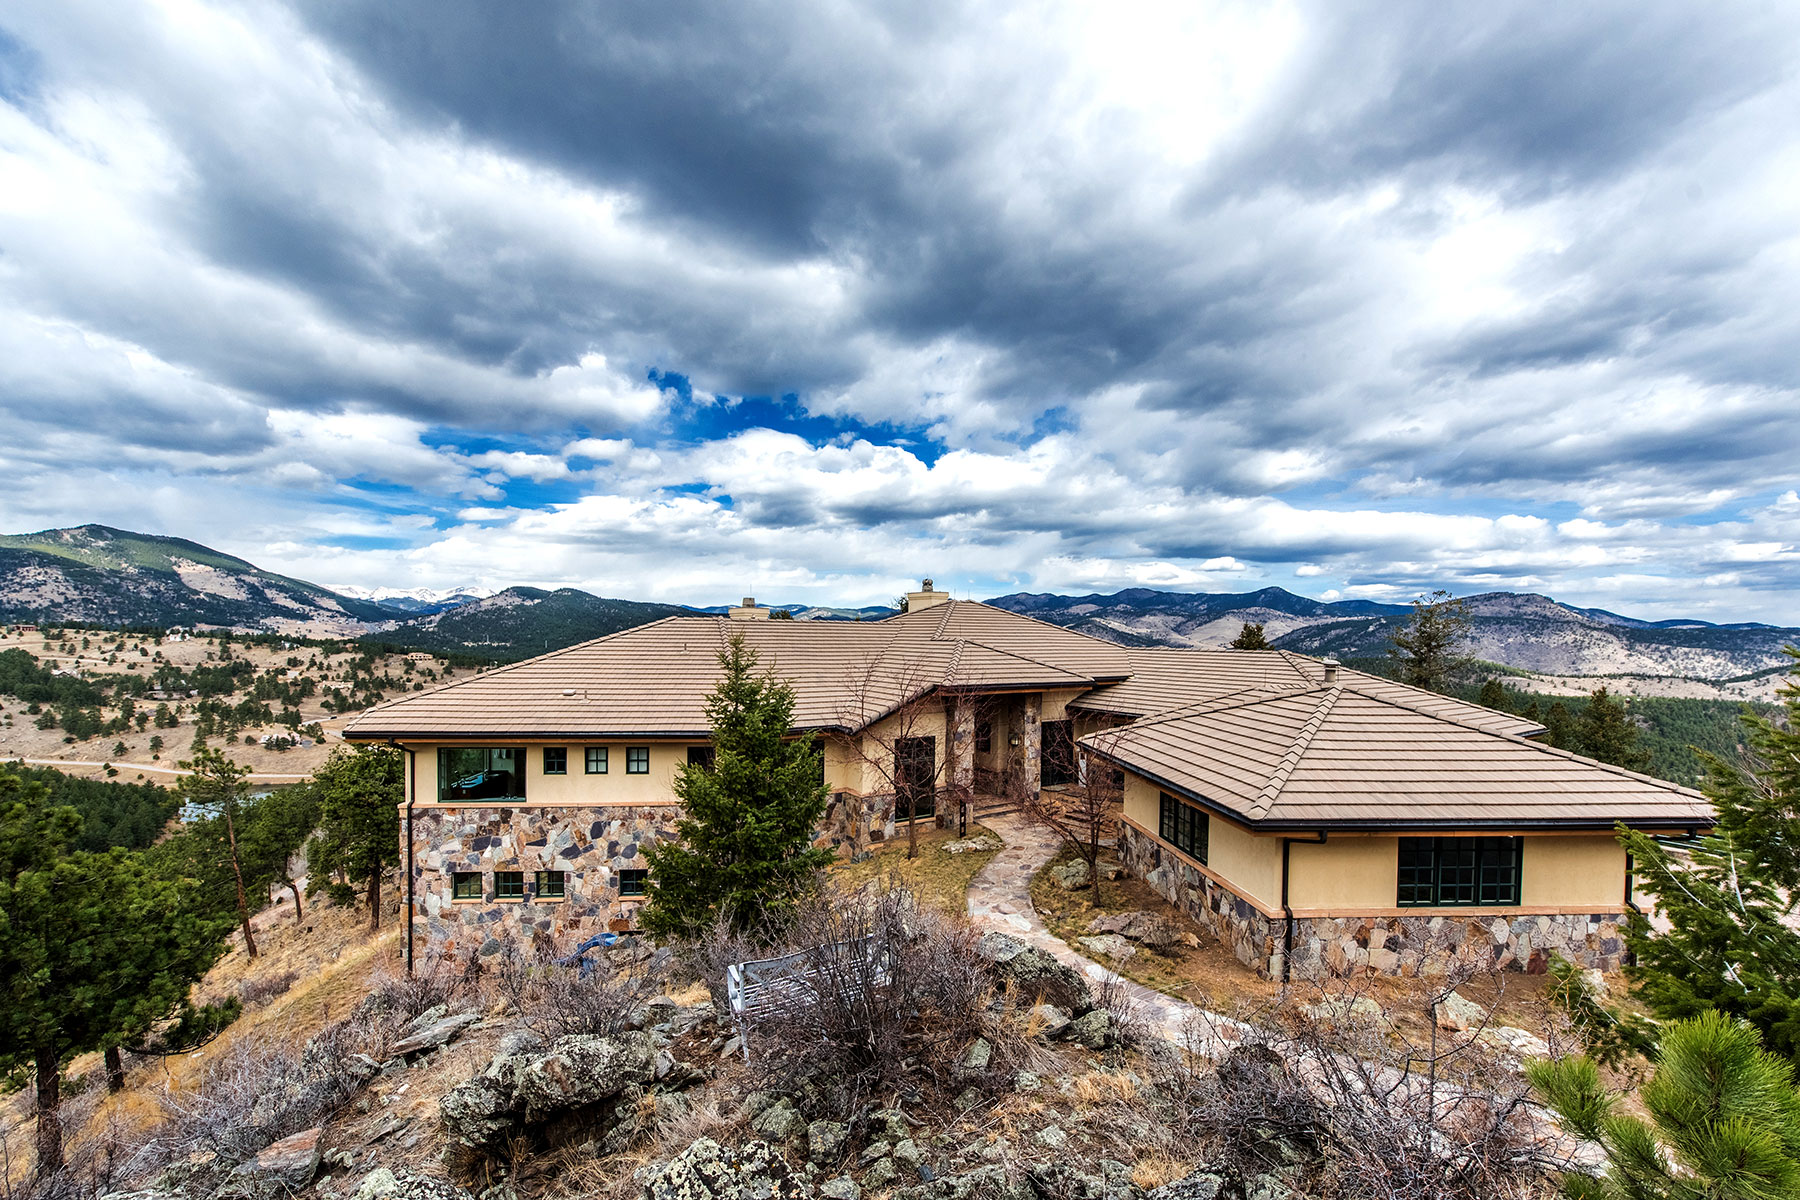 Maison unifamiliale pour l Vente à Modern Homes with Views! 414 Humphrey Drive Evergreen, Colorado, 80439 États-Unis